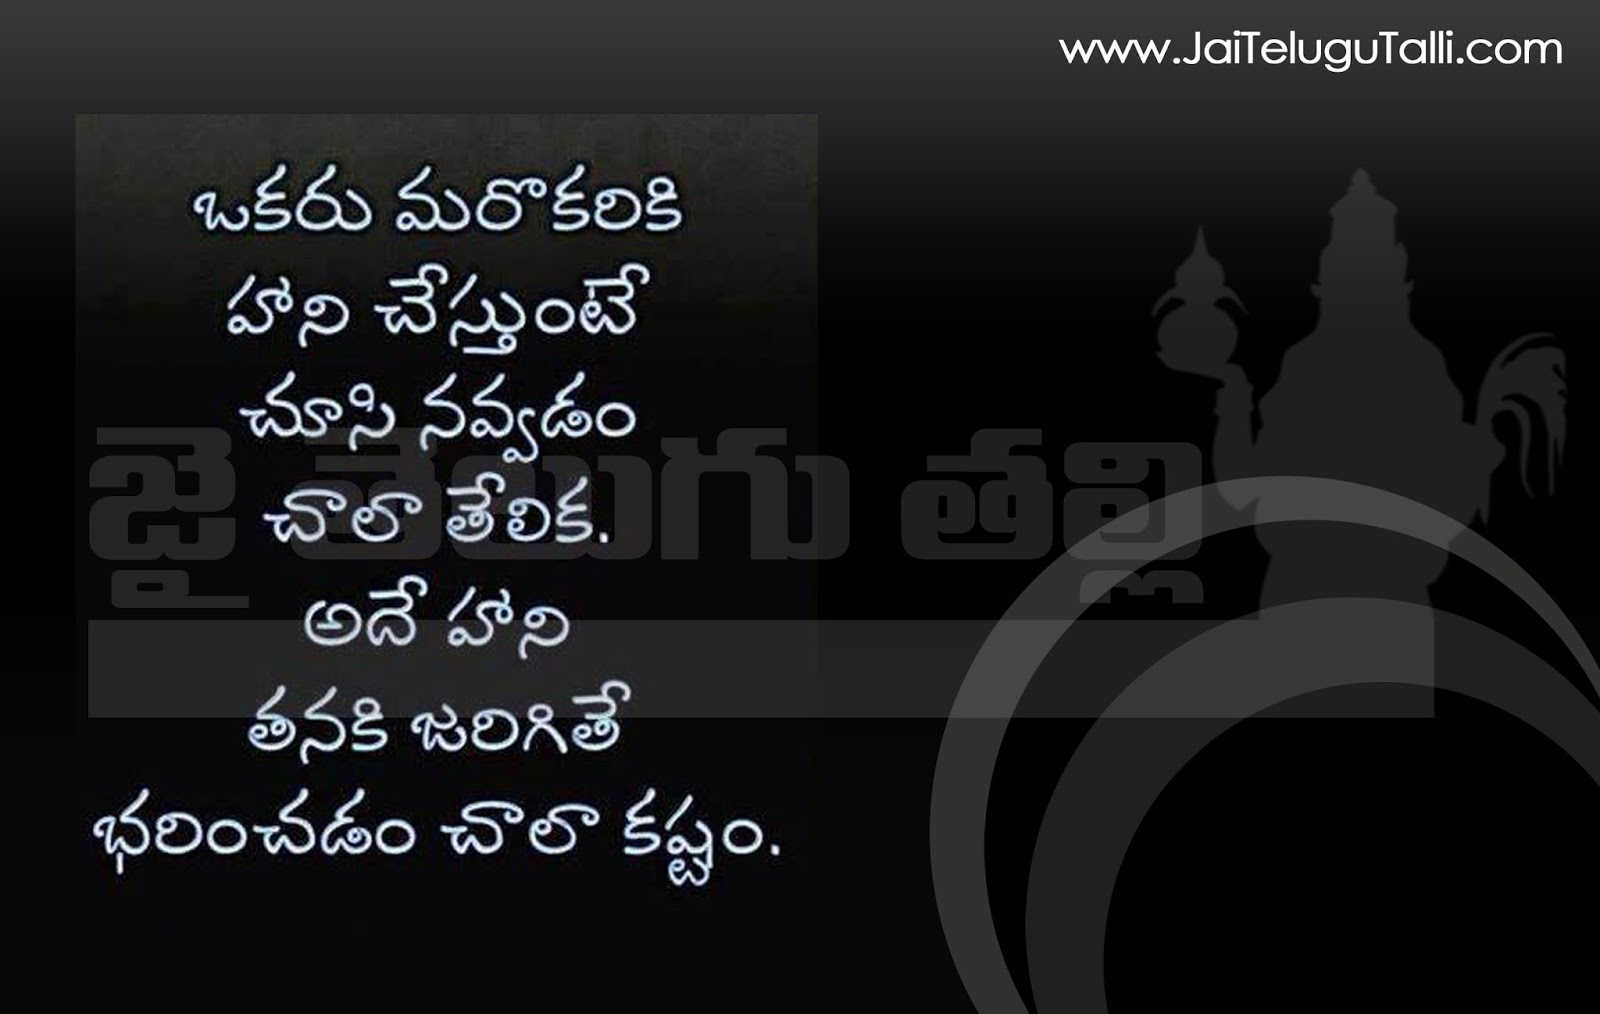 Motivational Messages Telugu Life Motivation Thoughts And Quotes  Www.jaitelugutalli